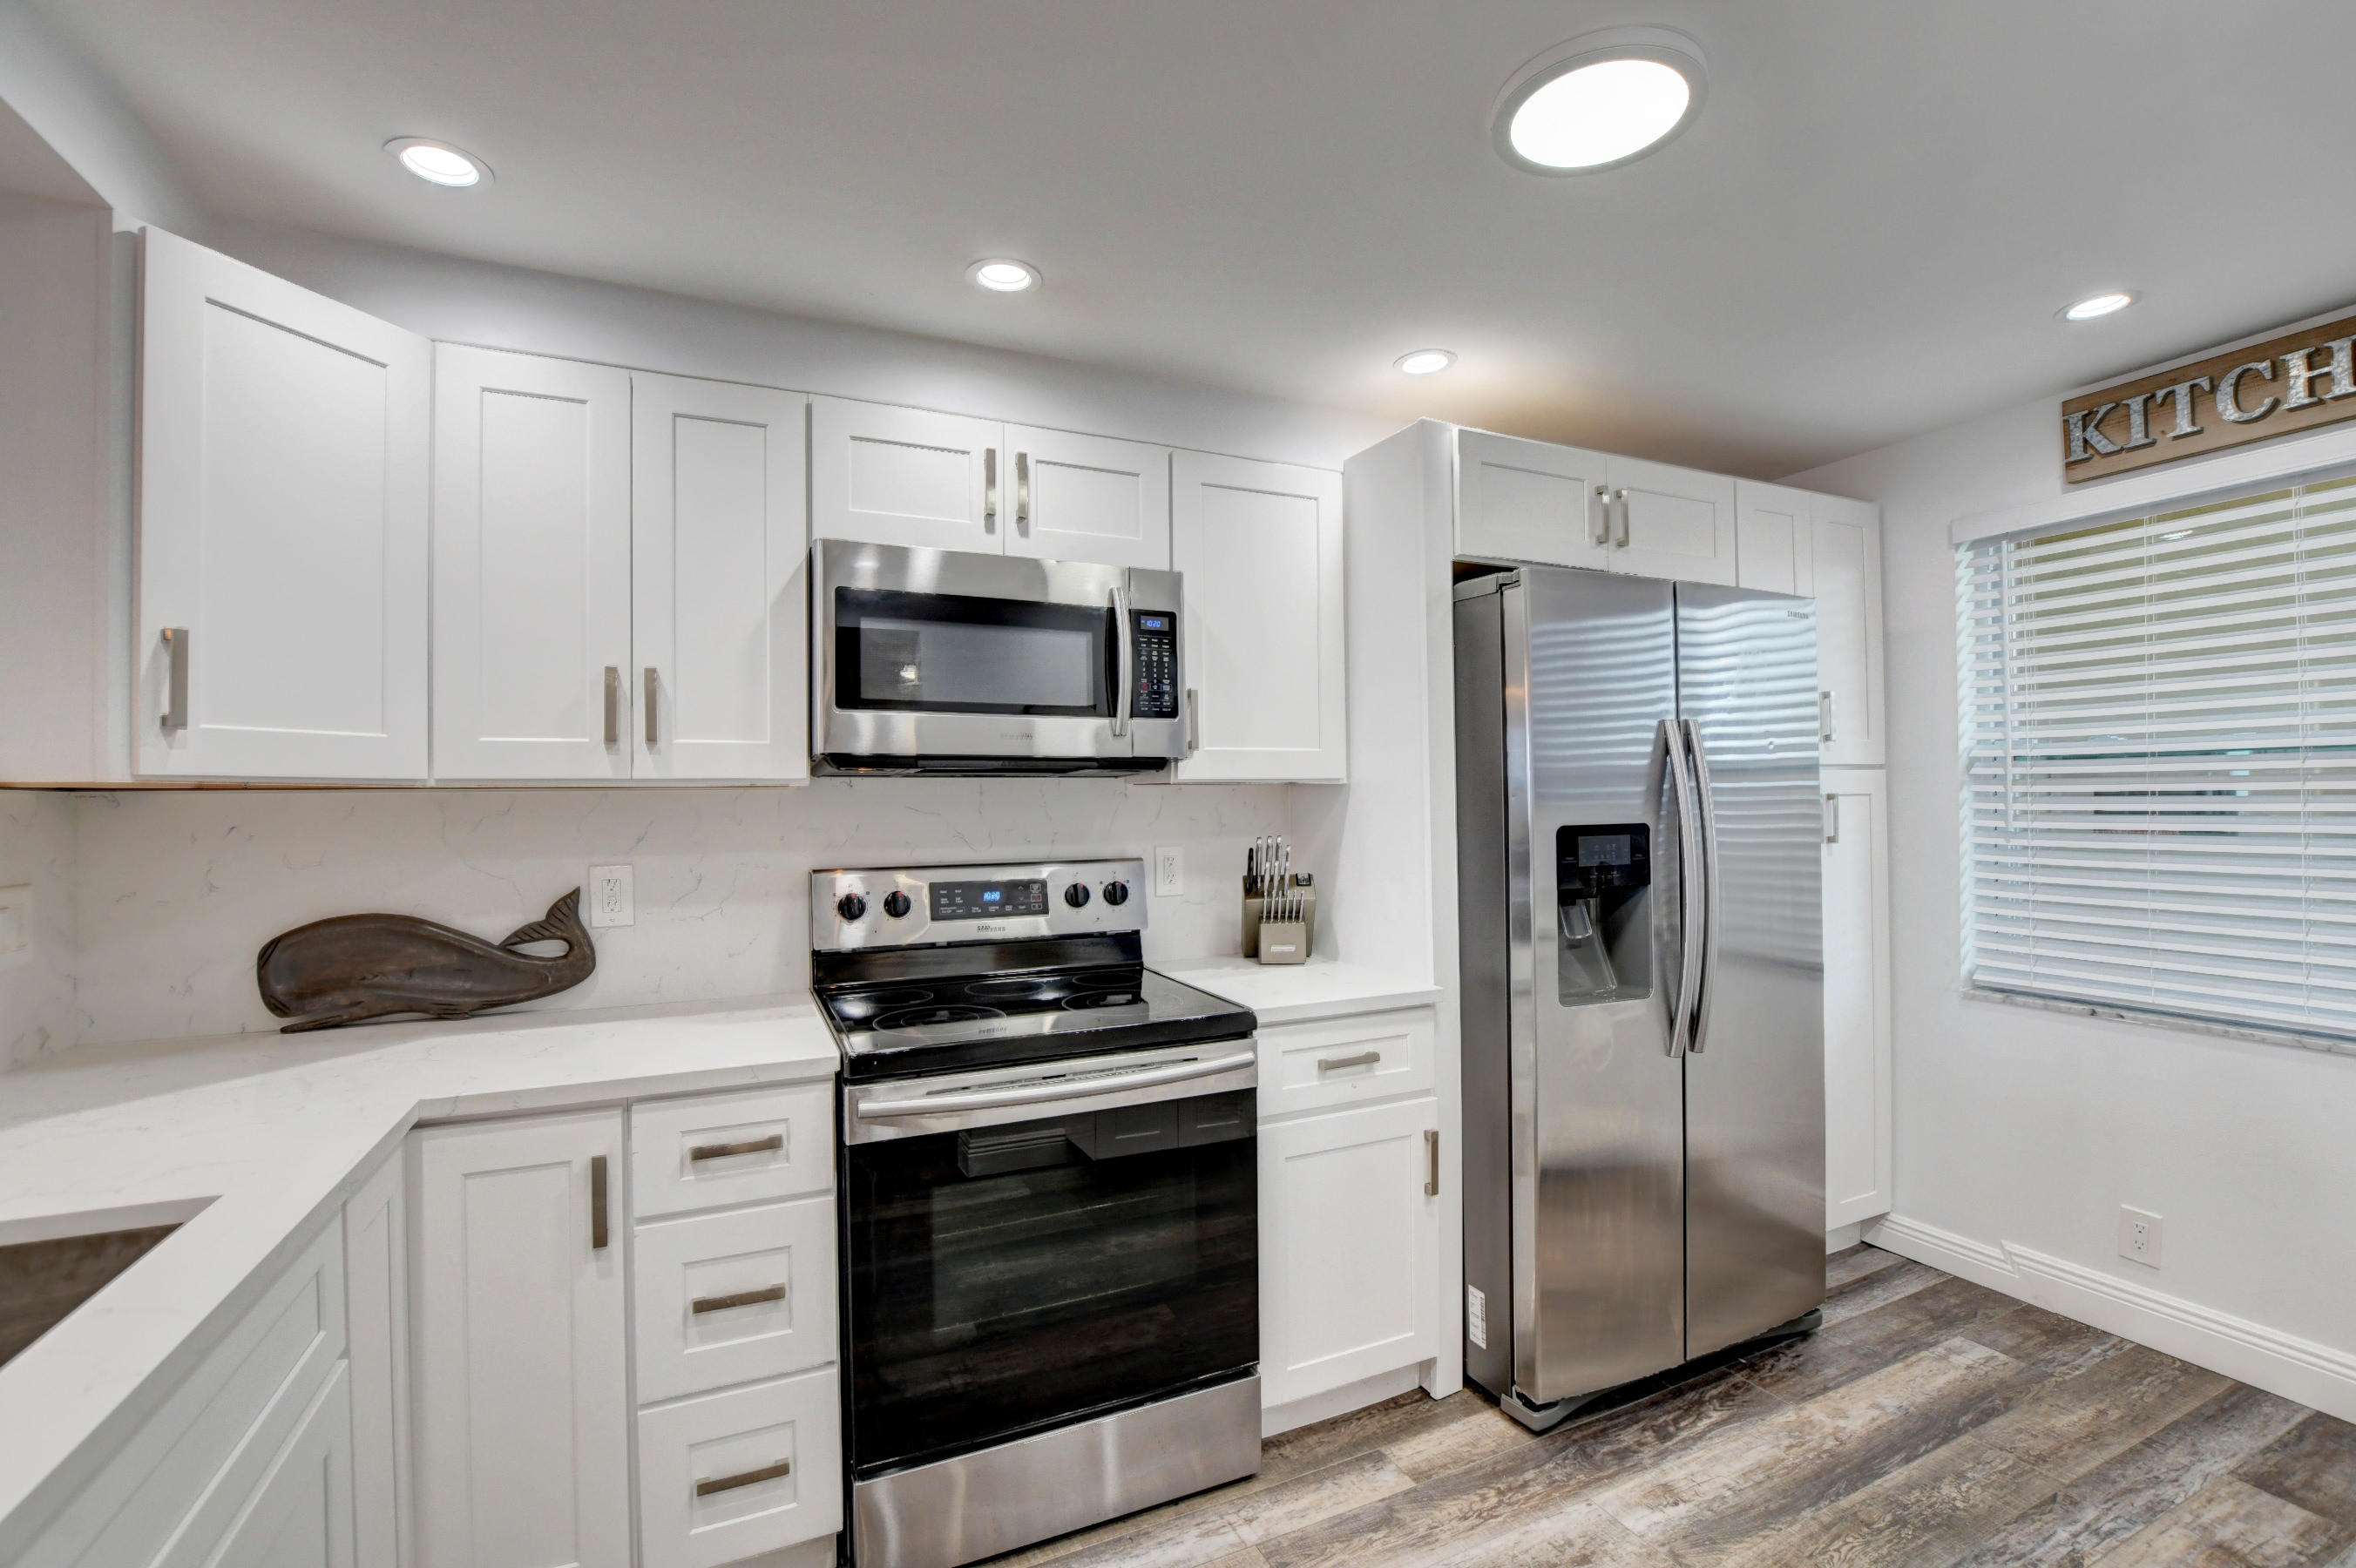 New GE Stainless Appliances appliances